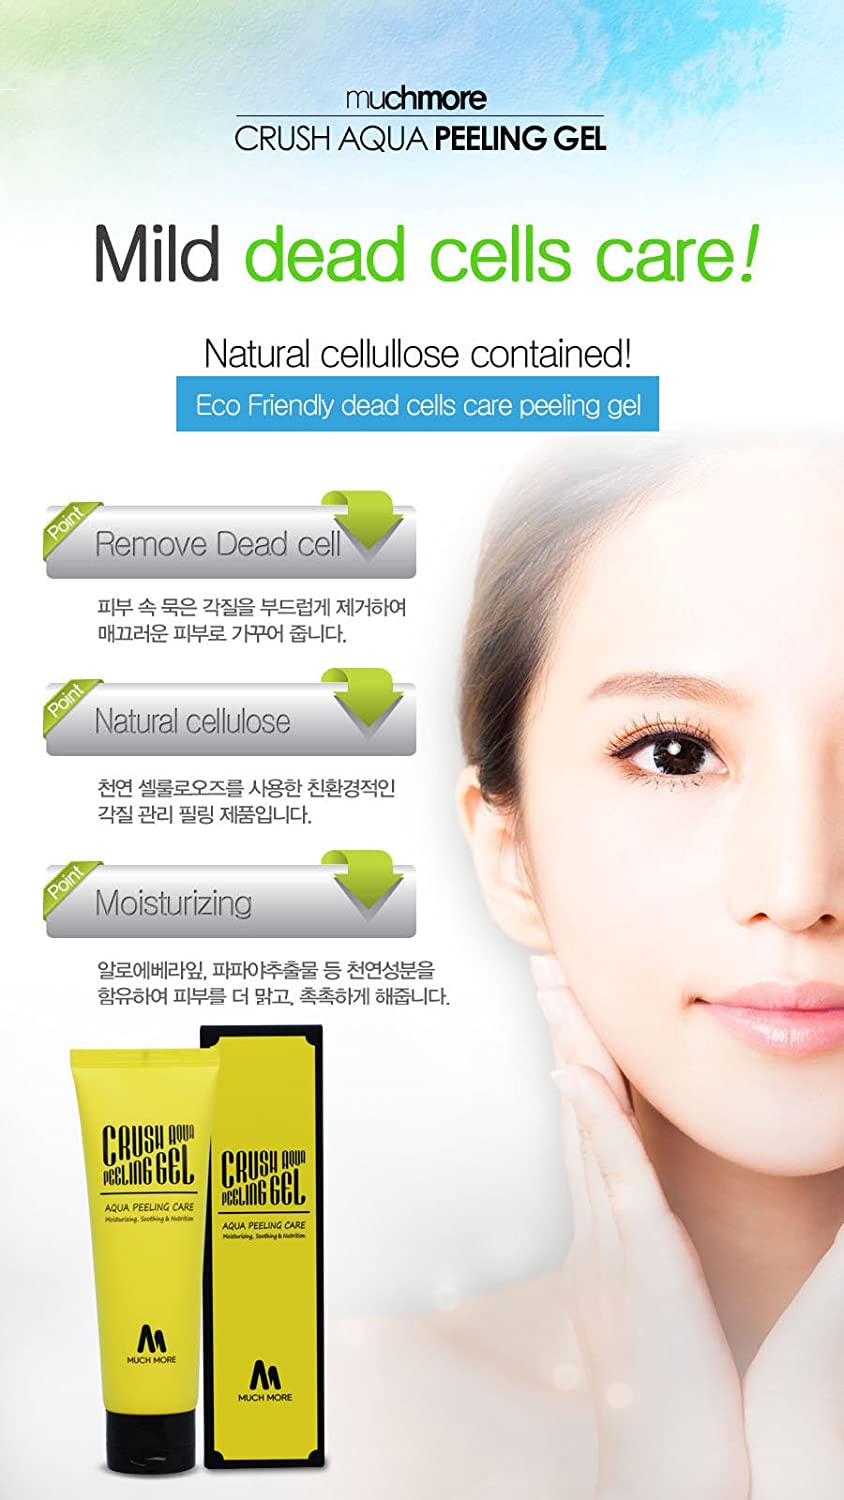 (6 Pack) MUCHMORE Crush Aqua Peeling Gel Russell Organics Purifying Concentrate